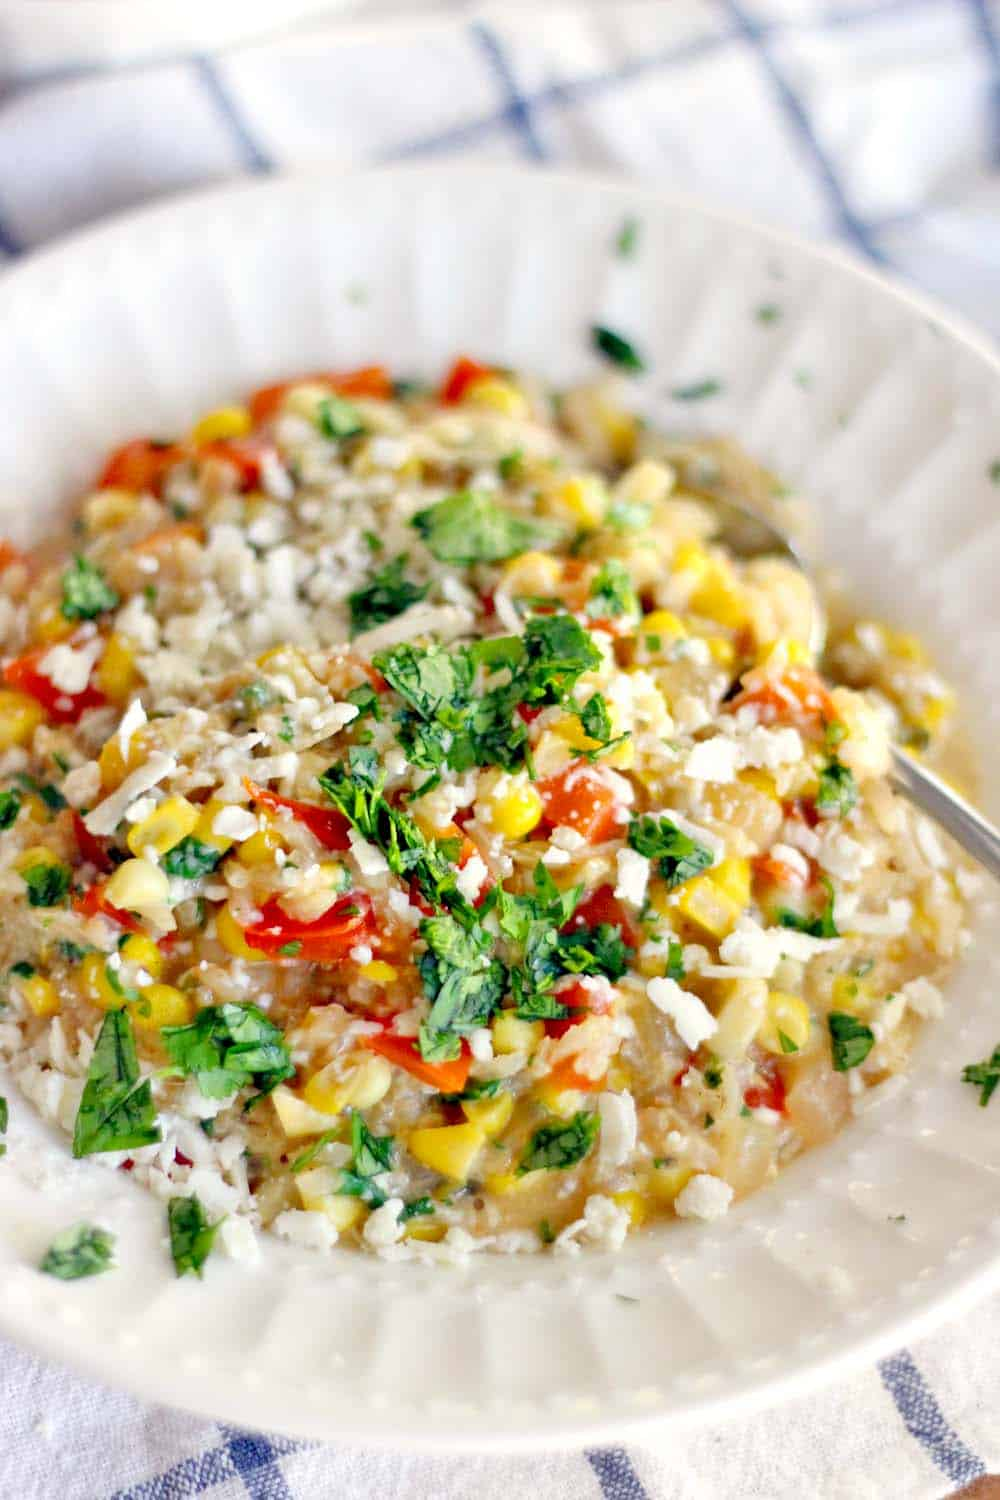 This easy brown rice risotto has a Mexican twist with red bell and jalapeno peppers, sweet fresh corn, and cotija cheese melted into every bite. Delicious as a side or as a main course!